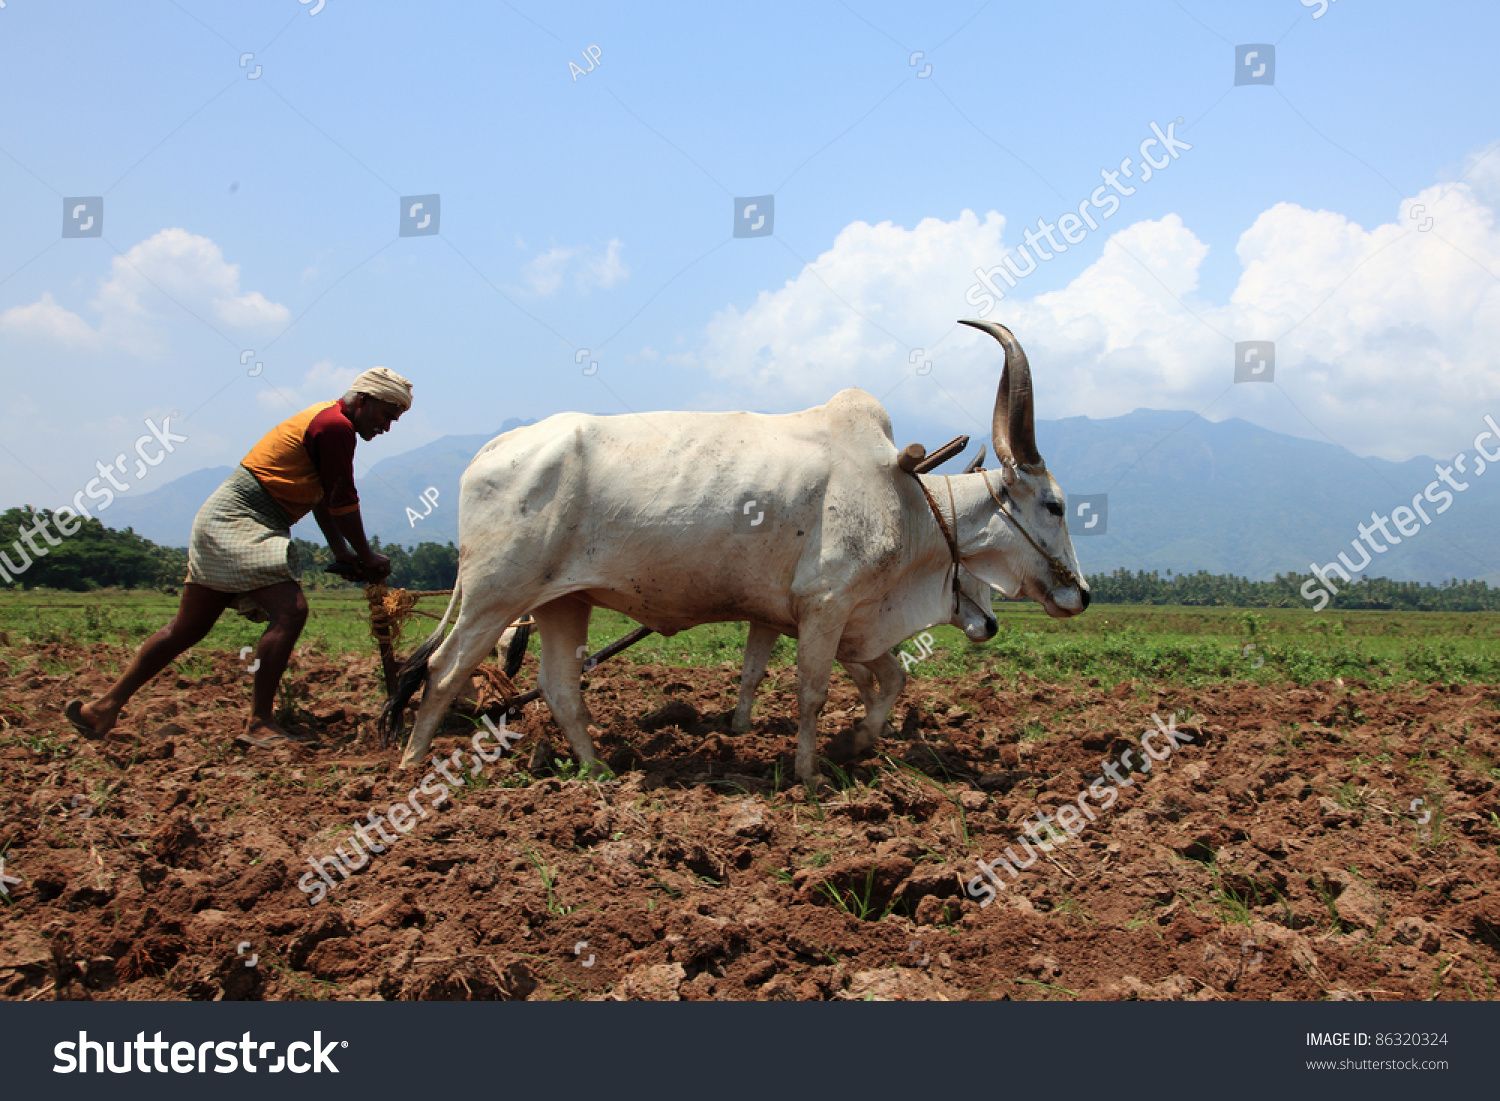 Clipart of a ox with a plow without a wip picture free stock Ox clipart agriculture indian - 43 transparent clip arts, images and ... picture free stock